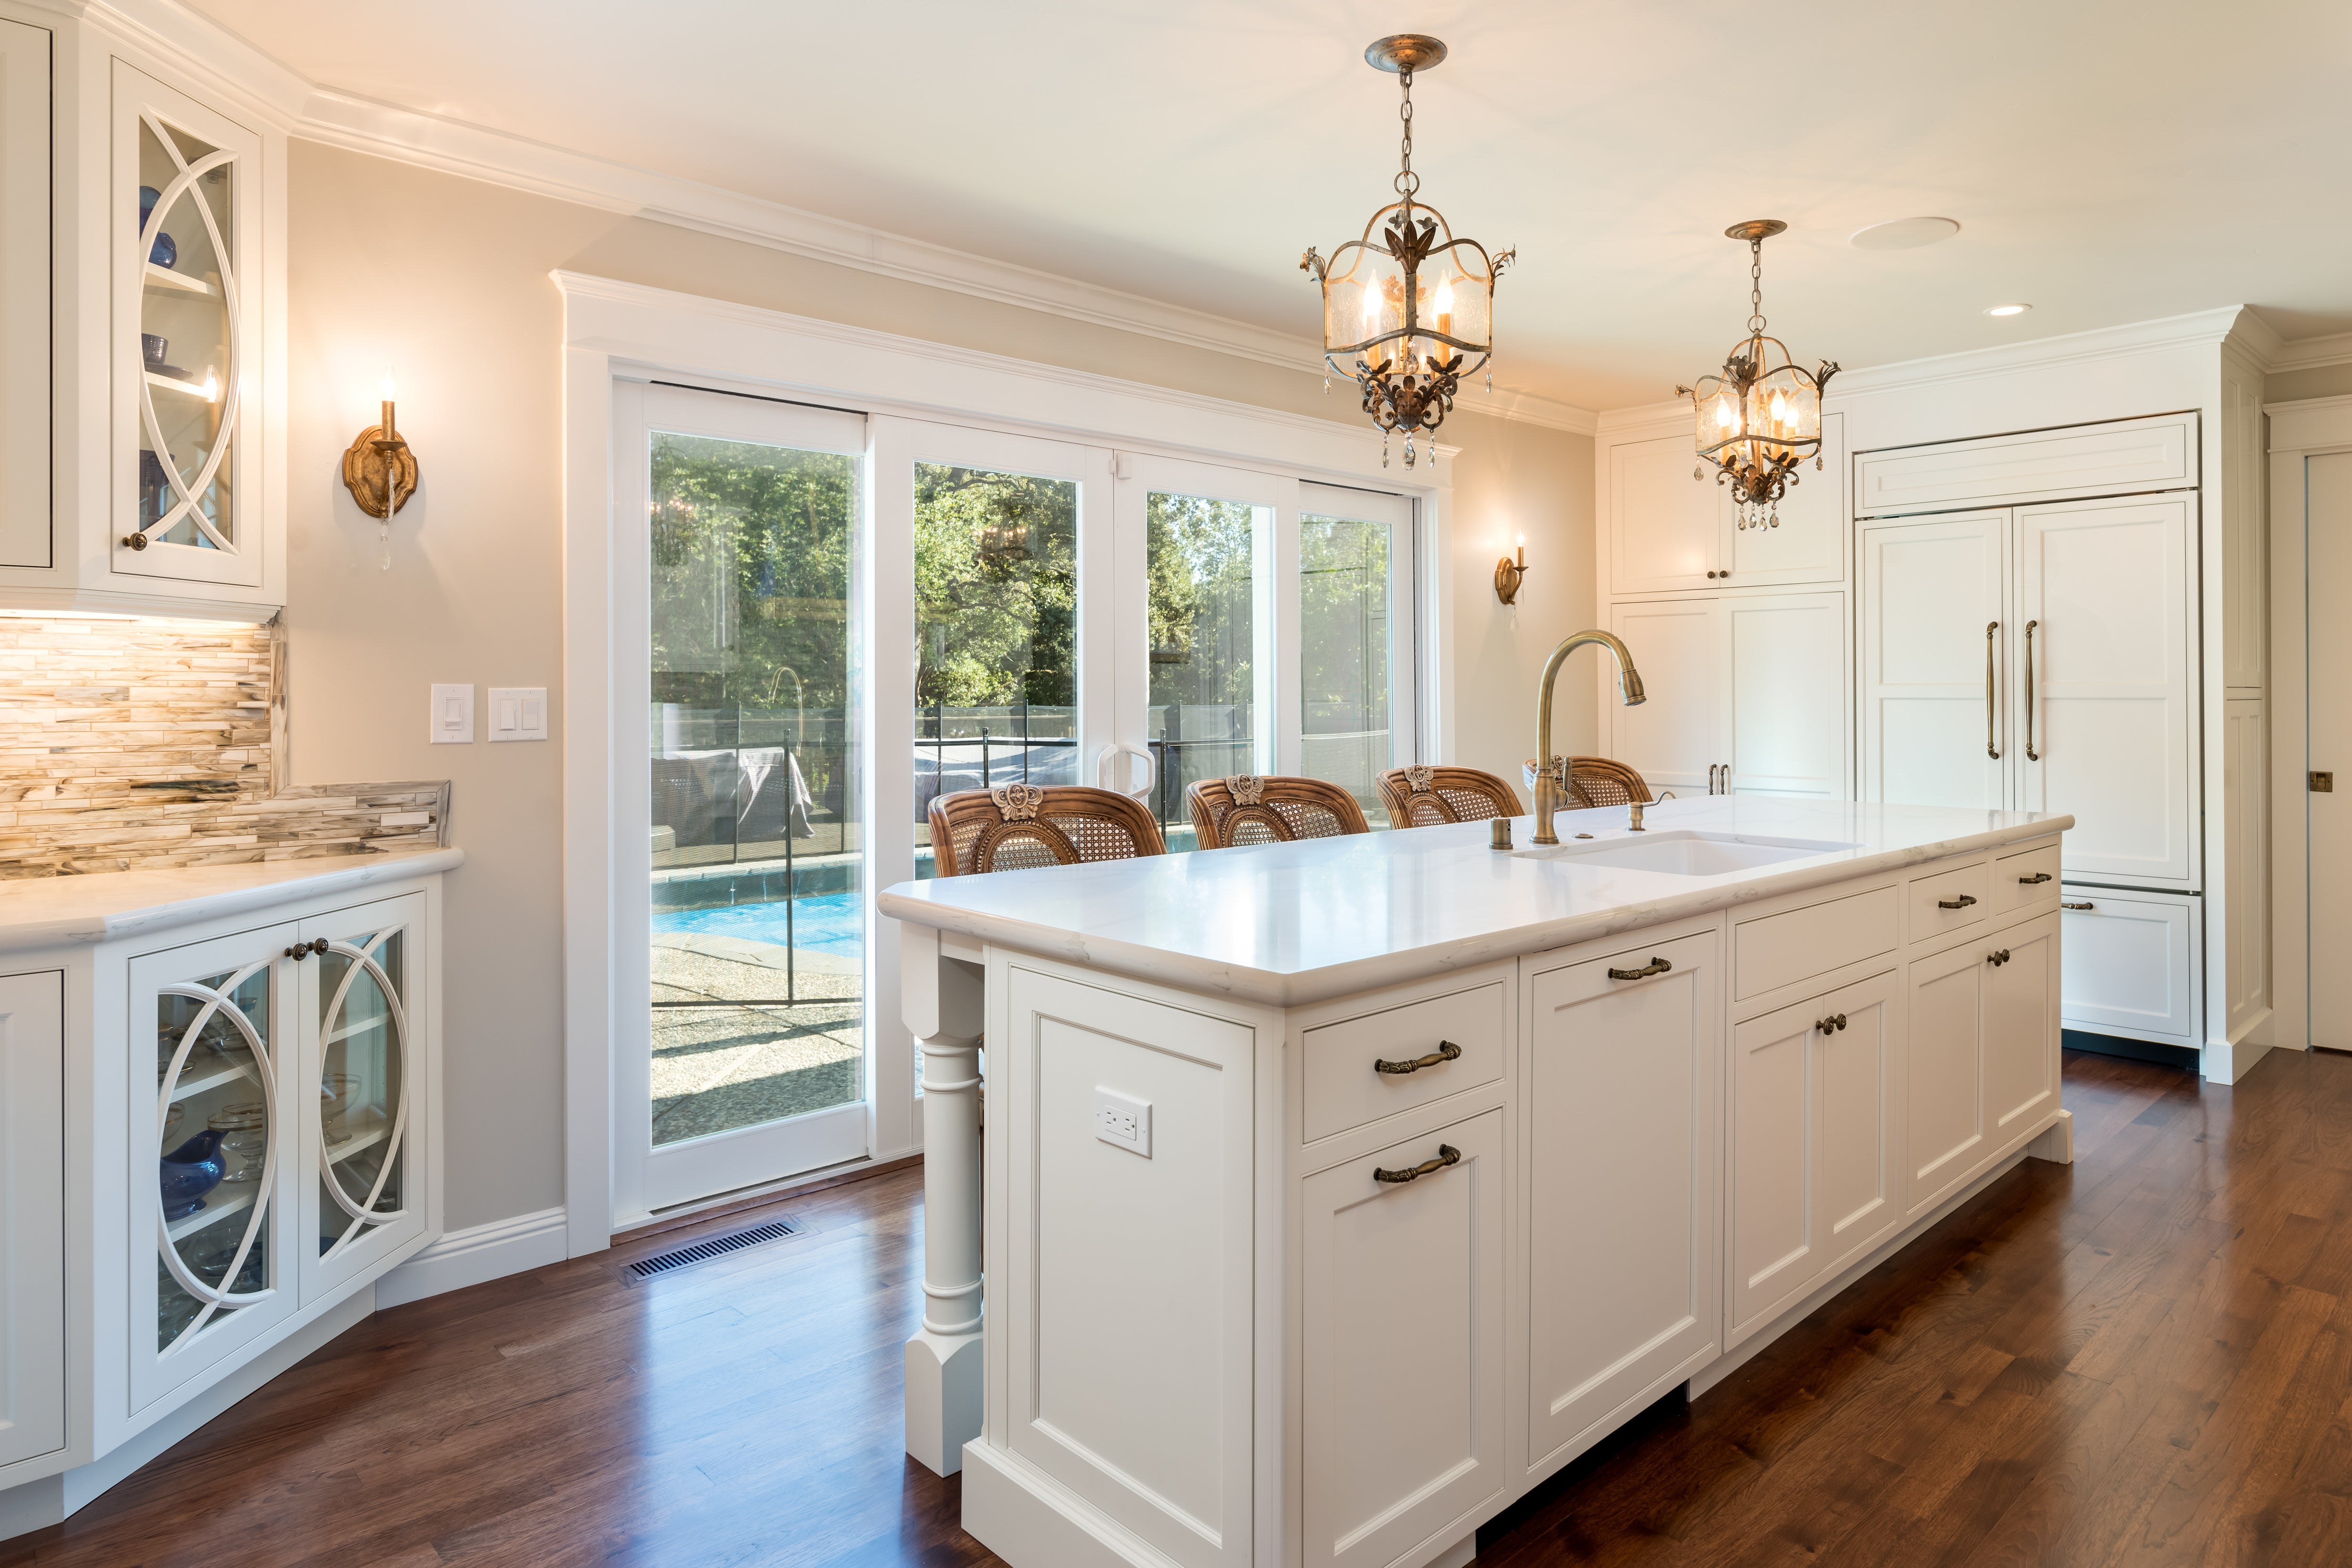 Design by Venue, Jackie Lopey, Moraga Kitchen Remodel - White Cabinets - French Influence